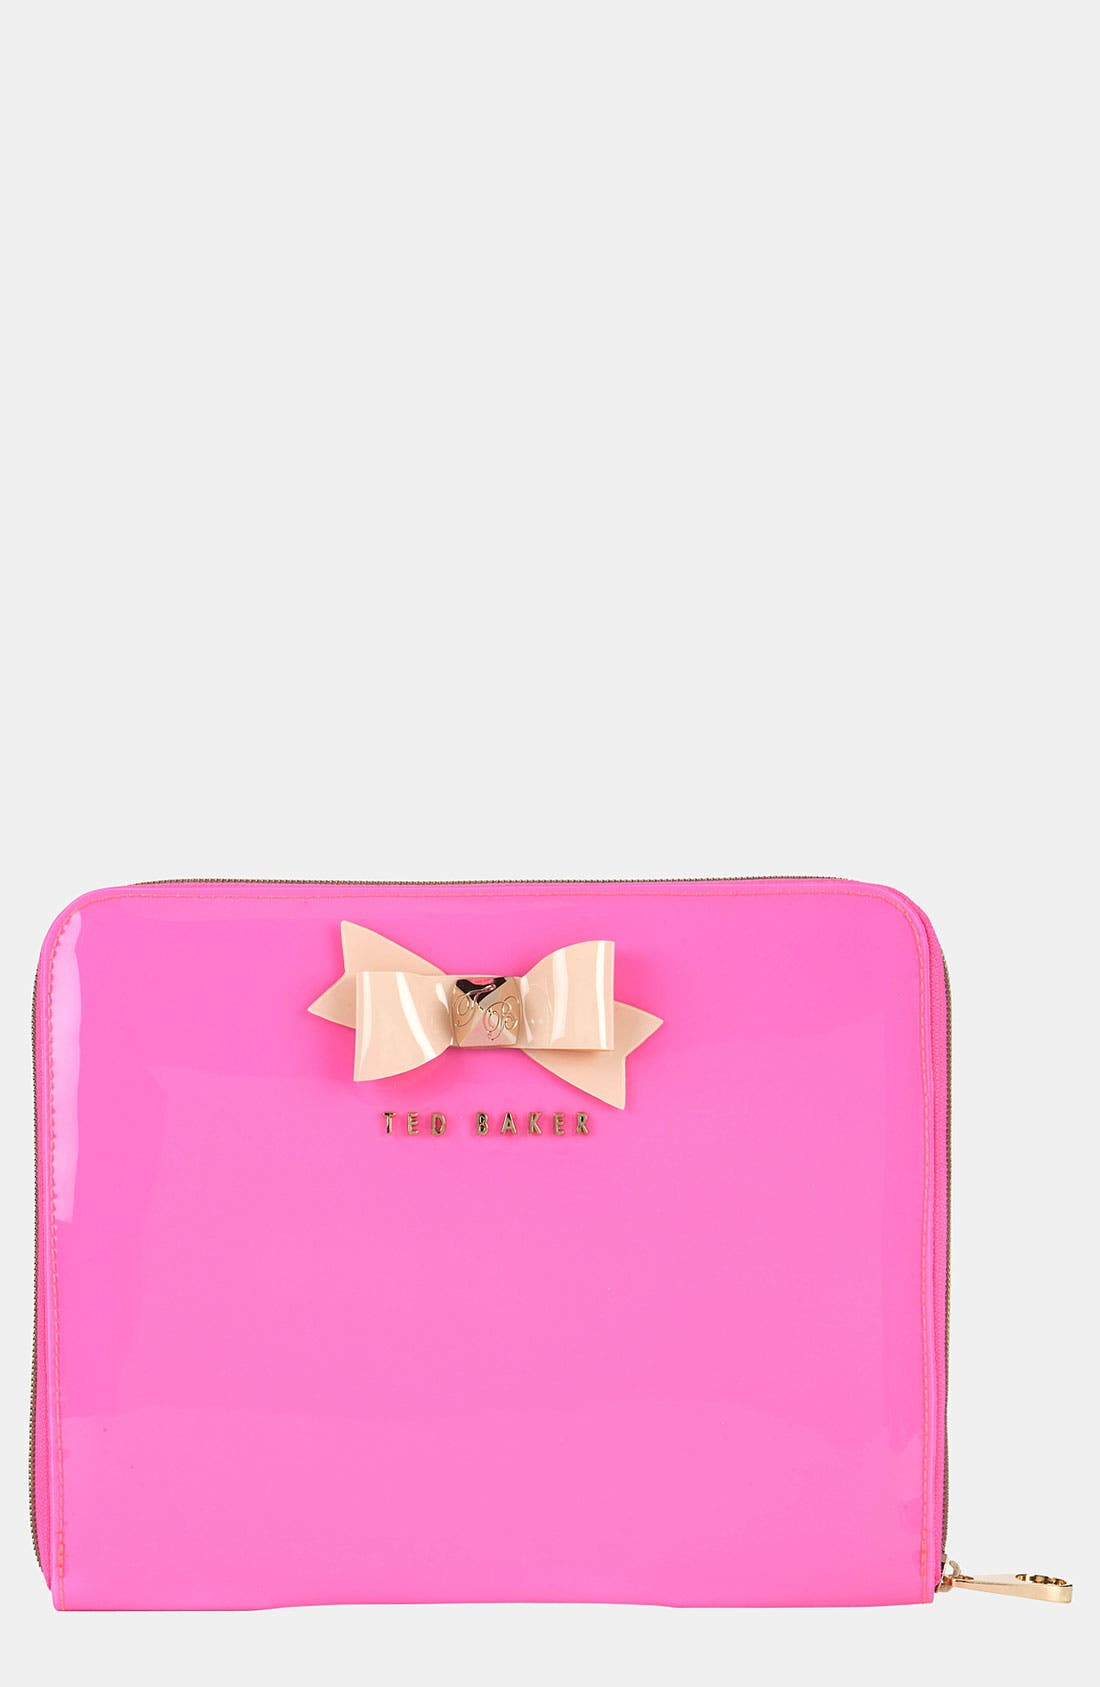 Alternate Image 1 Selected - Ted Baker London 'Bow' iPad Case